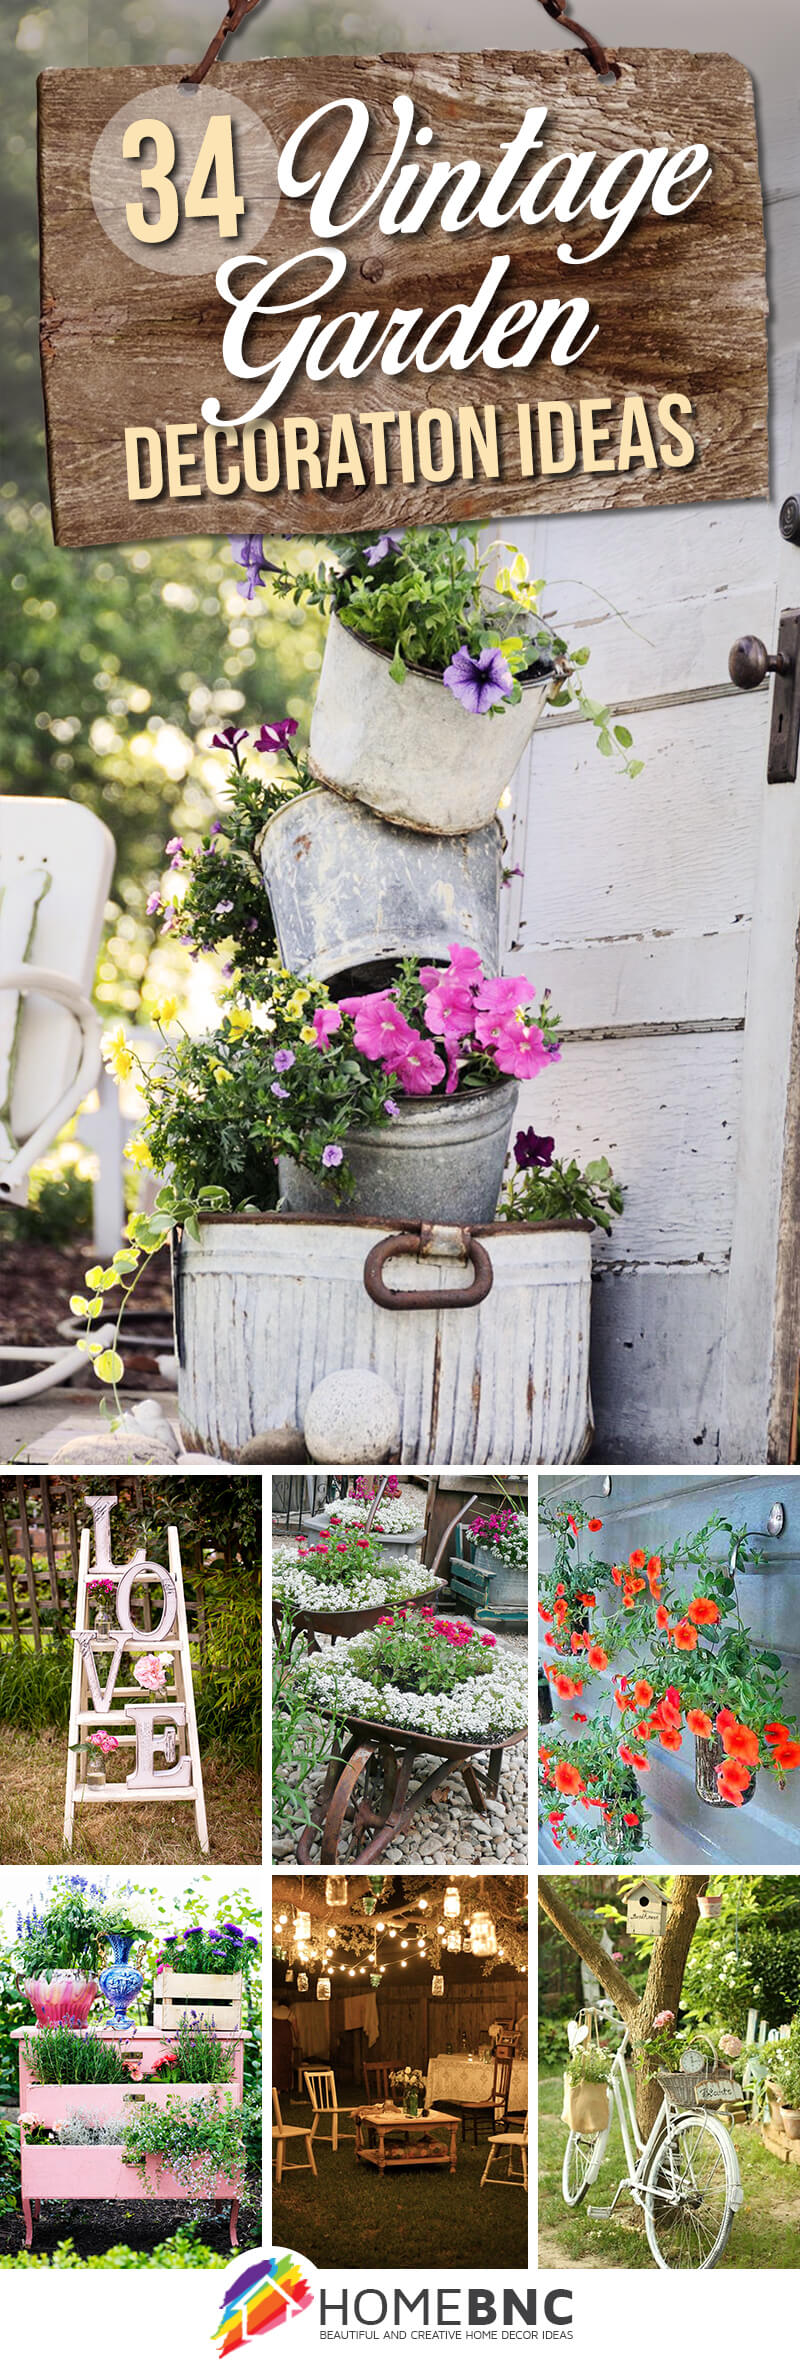 garden decorations ideas  61